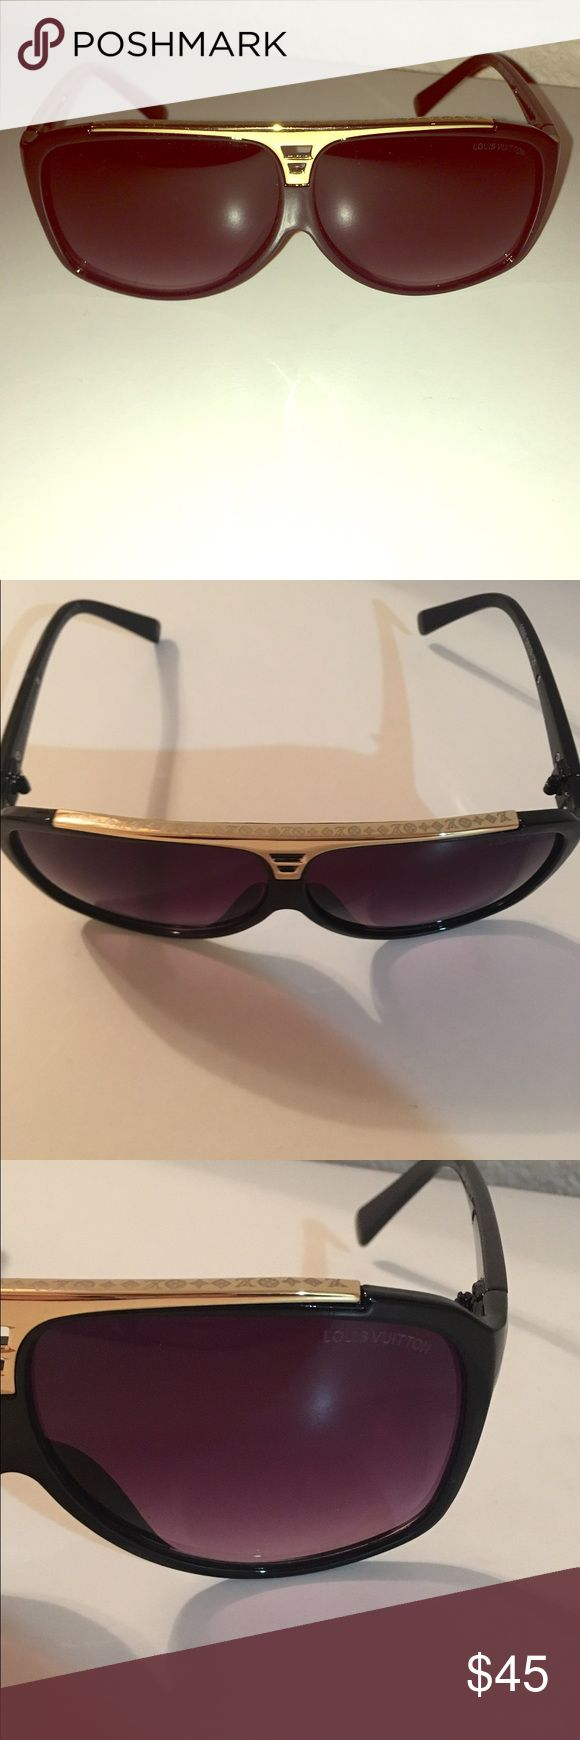 Louis Vuitton evidence sunglasses Brand new never worn was given as a gift. Not quite sure on the authenticity. They look great! Their approximately over $500 however I've googled the sunglasses and they look almost identical as the original with a few minor irregularities on the inside of the frame. Nothing noticeable. Louis Vuitton Accessories Sunglasses